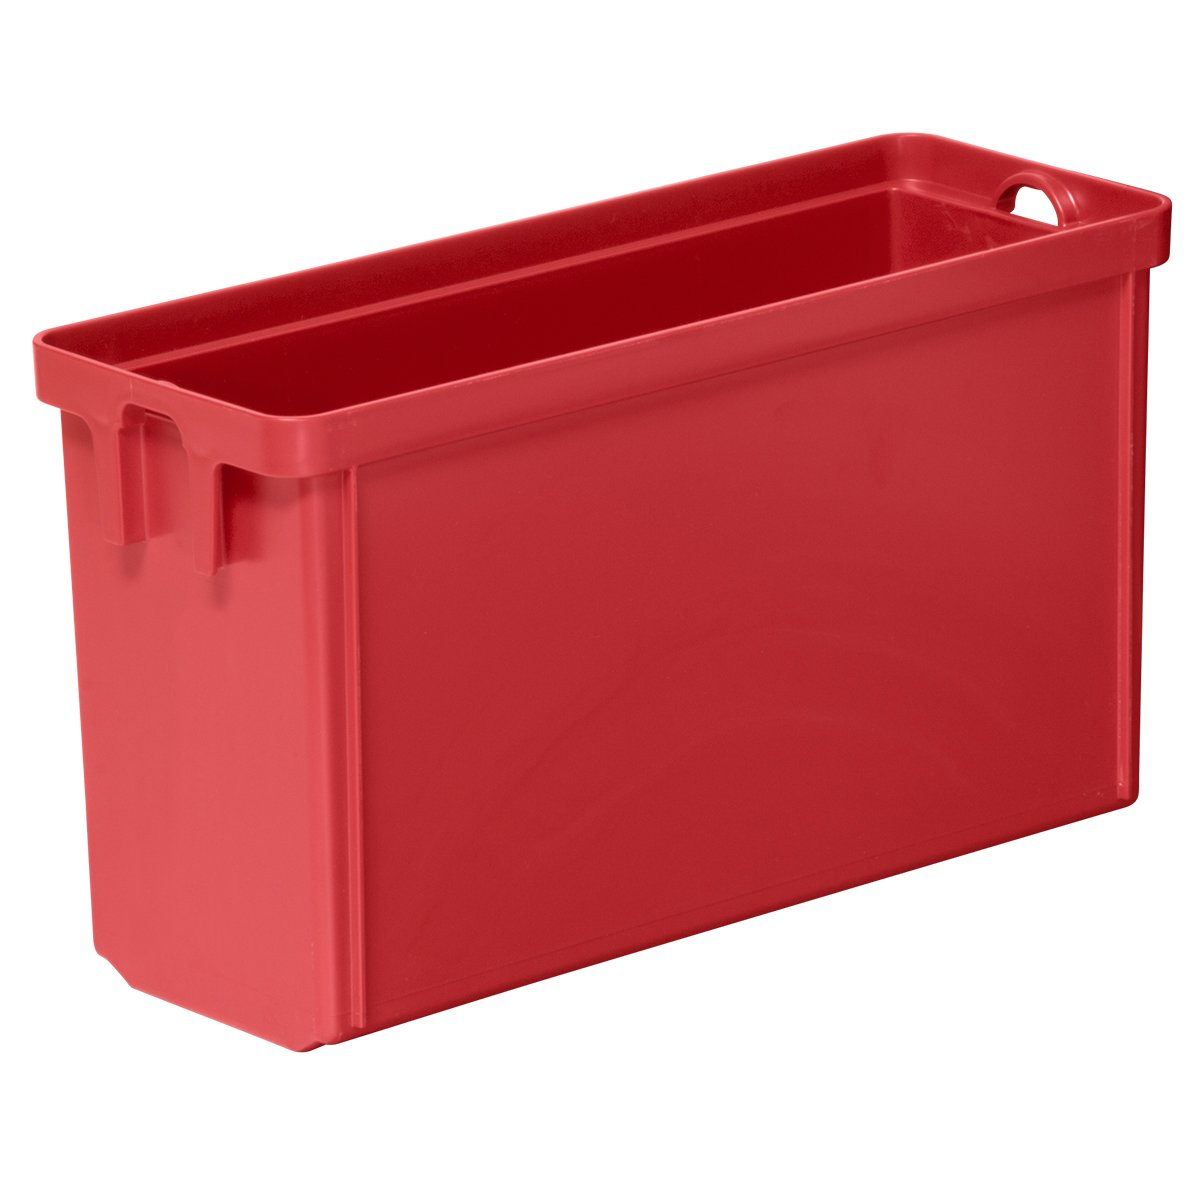 Akro-Mils 38004 1/4 Sorting Cup for 38358 Multi-Load Tote, Red, 6-Pack